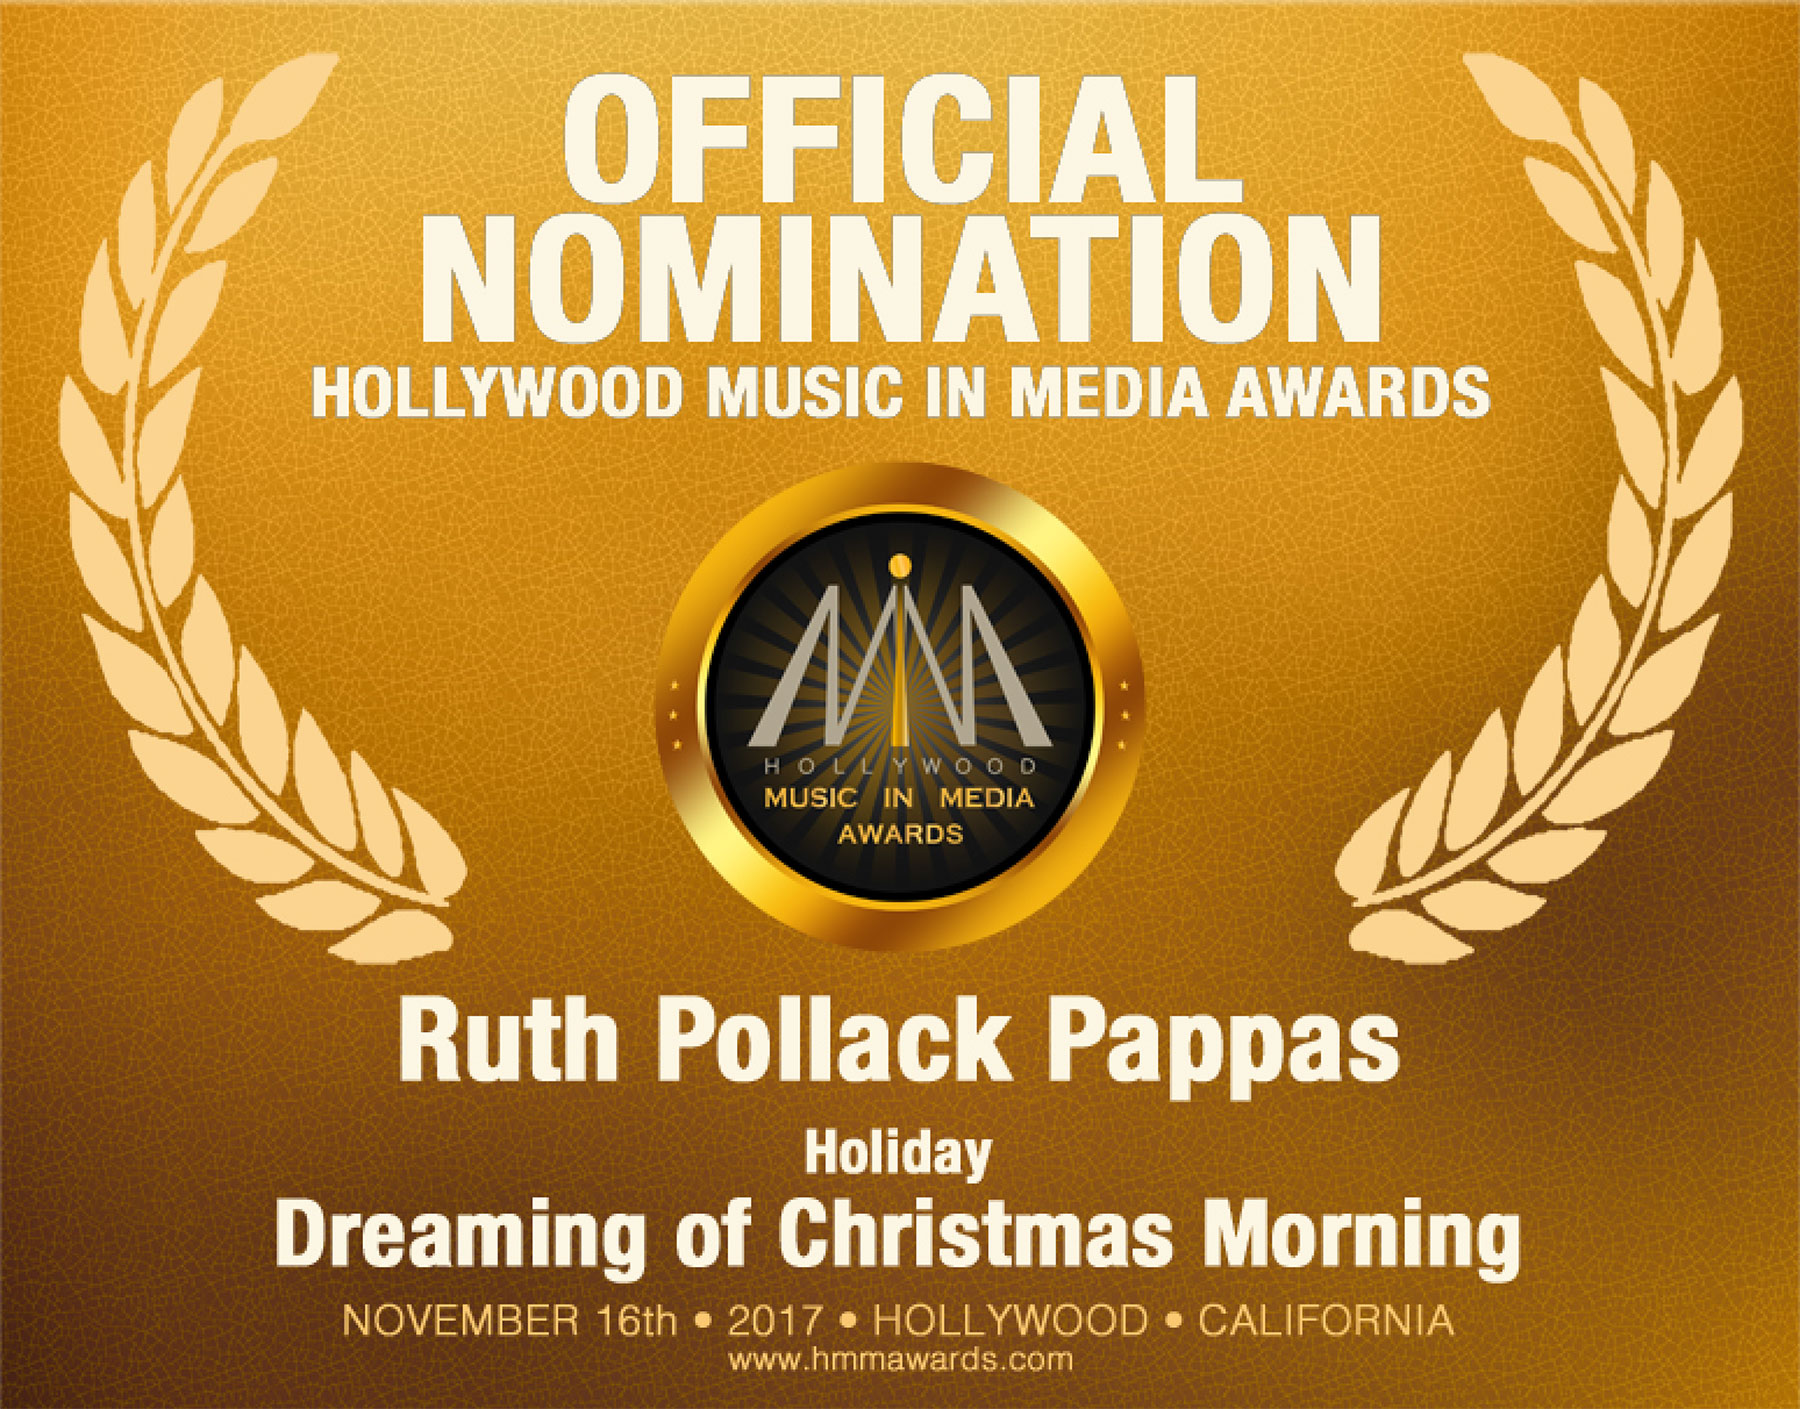 Ruth Pollack Pappas Holiday Song 2017 HMMA Nomination